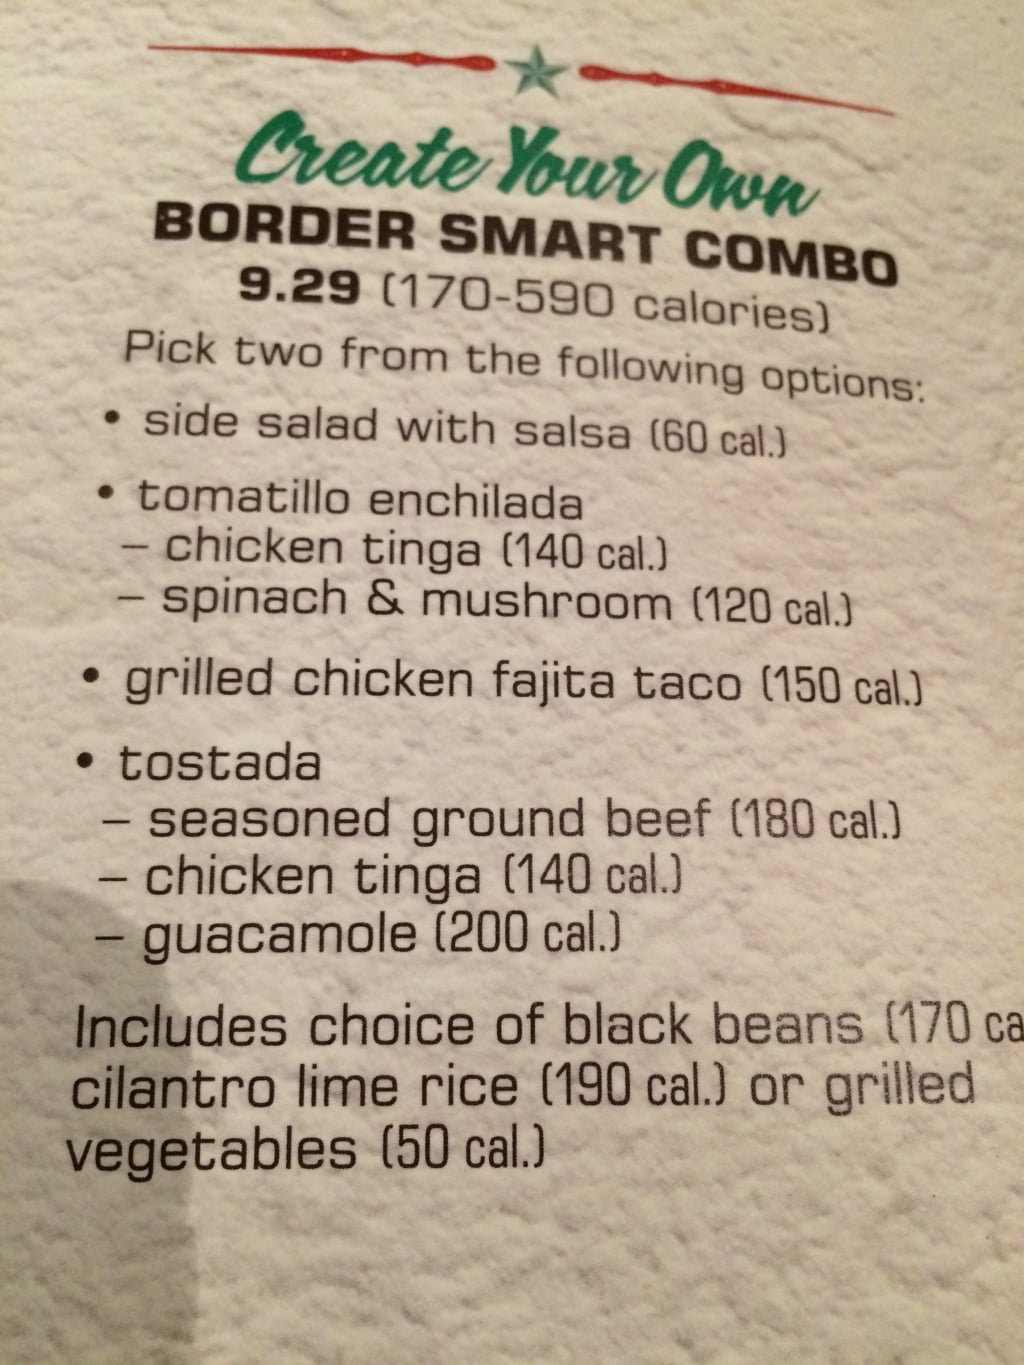 On The Border: Border Smart Combo Keto Low Carb